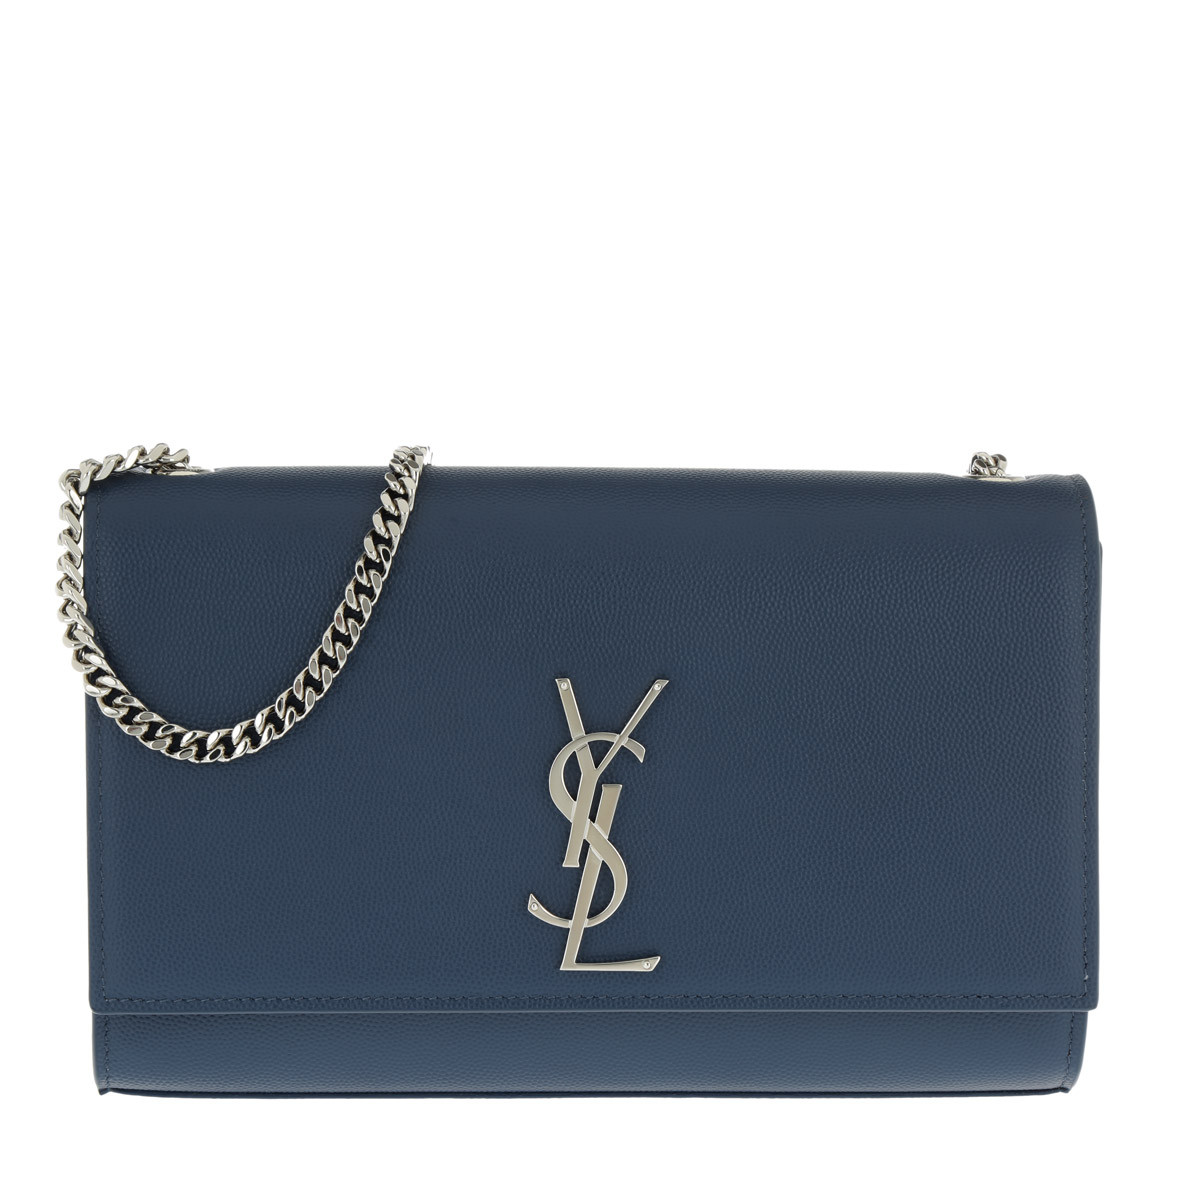 Saint Laurent Umhängetasche - YSL Monogramme Chain Clutch Grain De Poudre Denim - in blau - für Damen